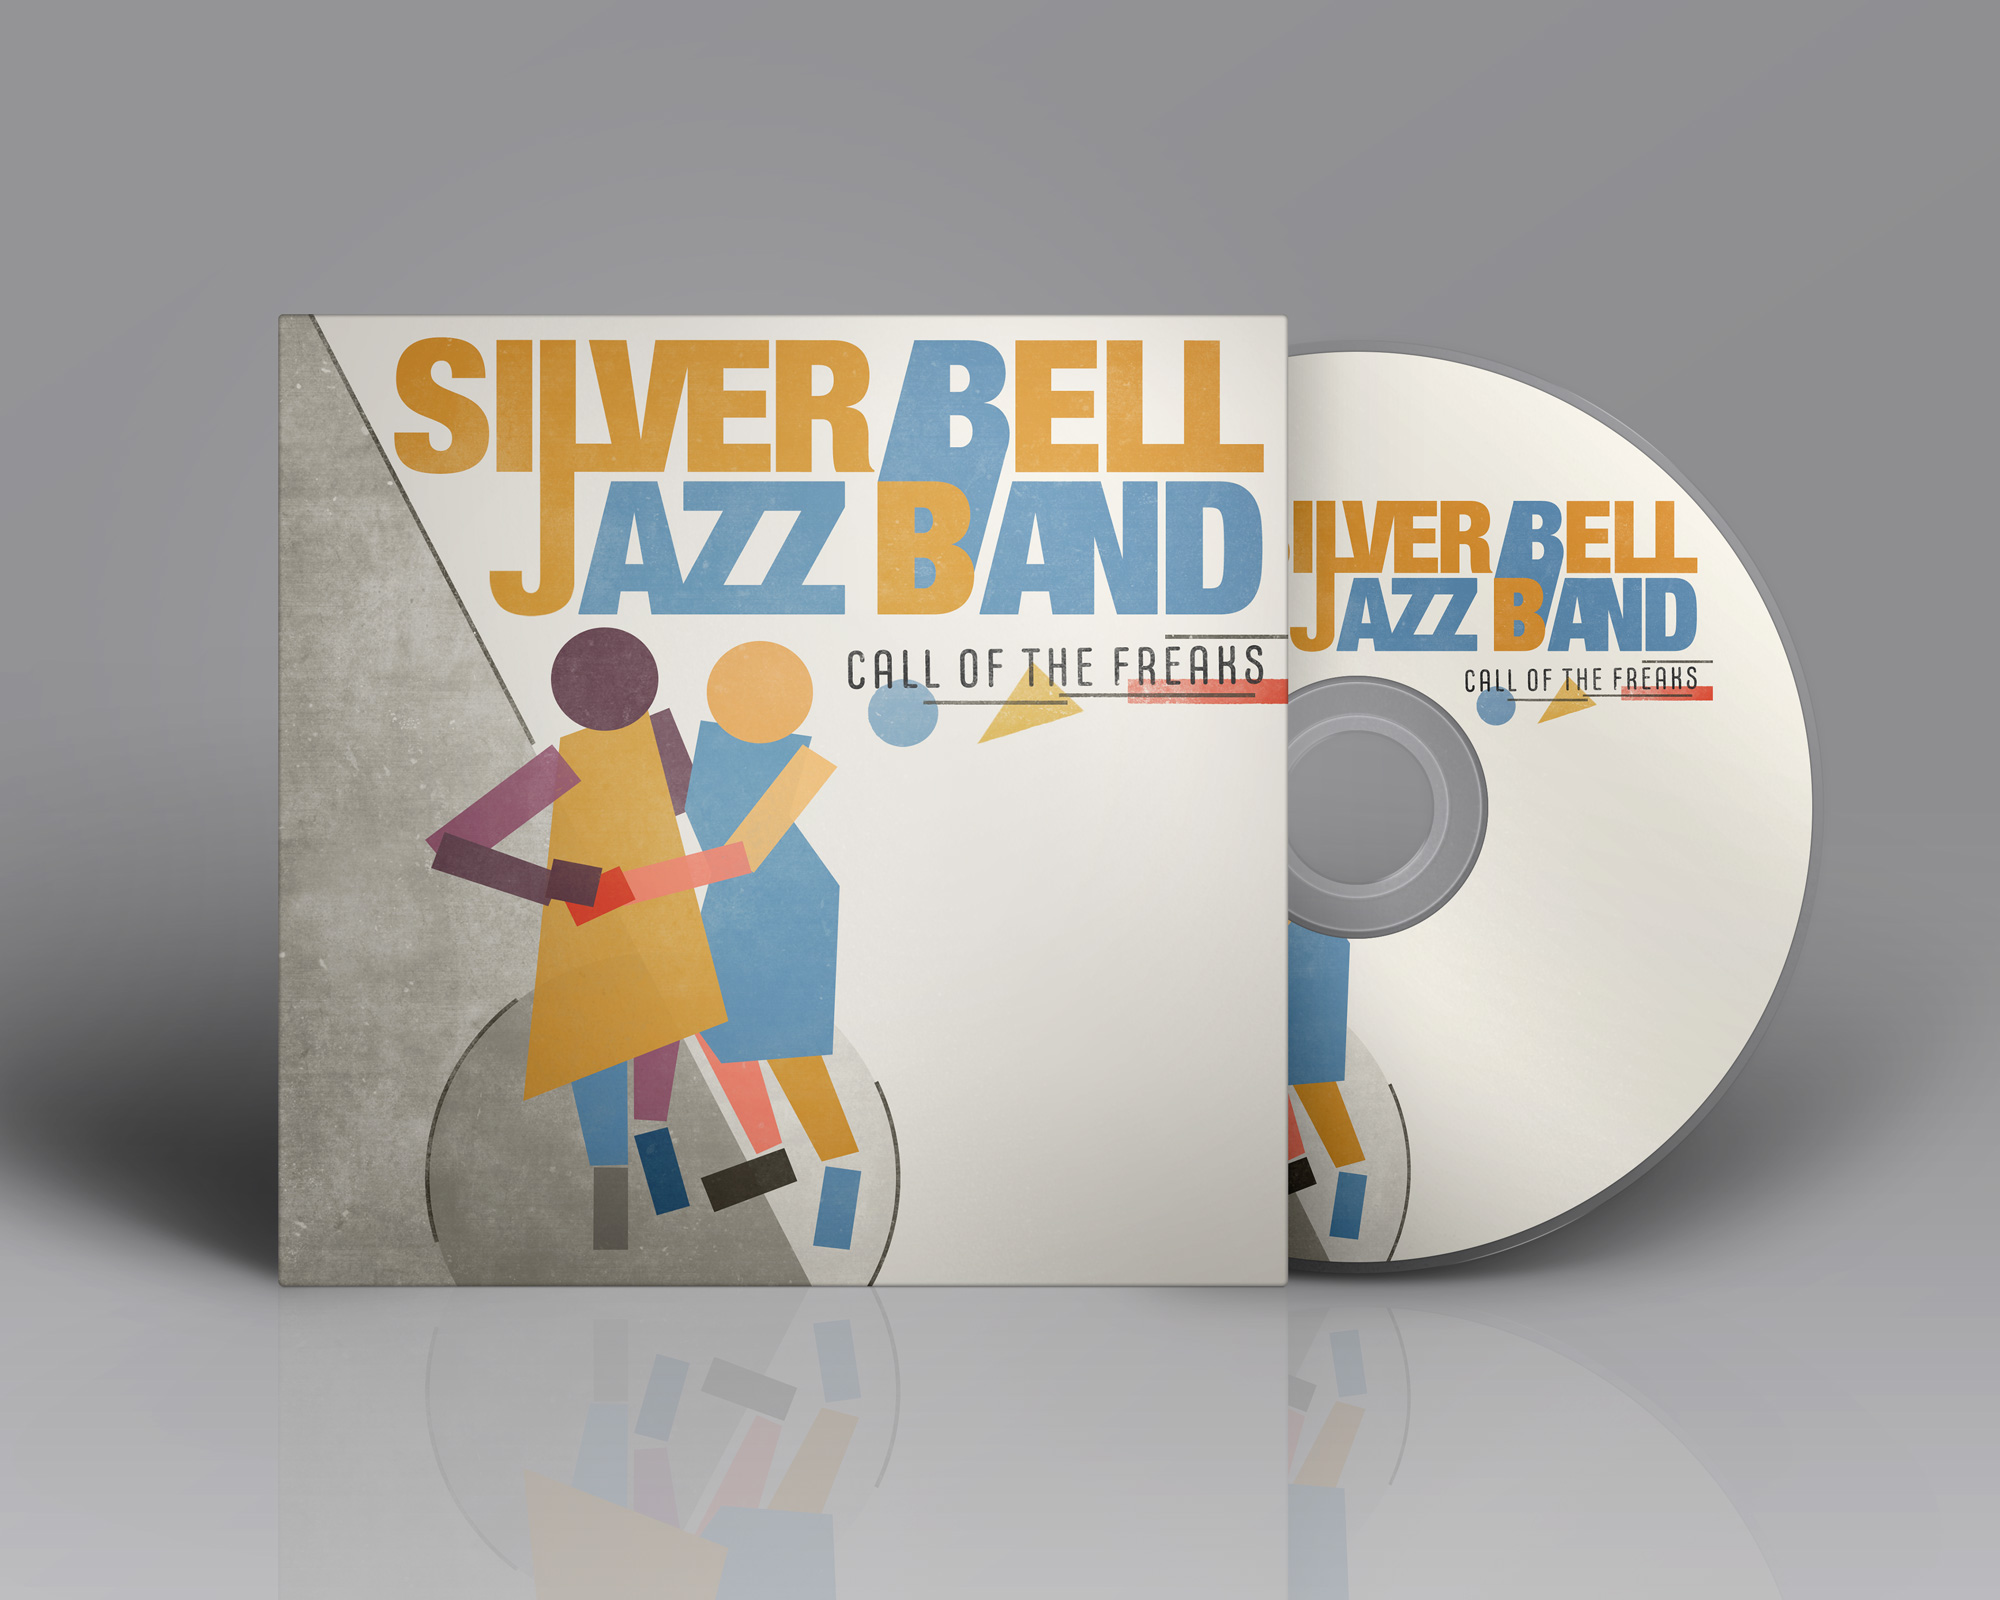 Call of the freaks Silver Bell Jazz Band album design